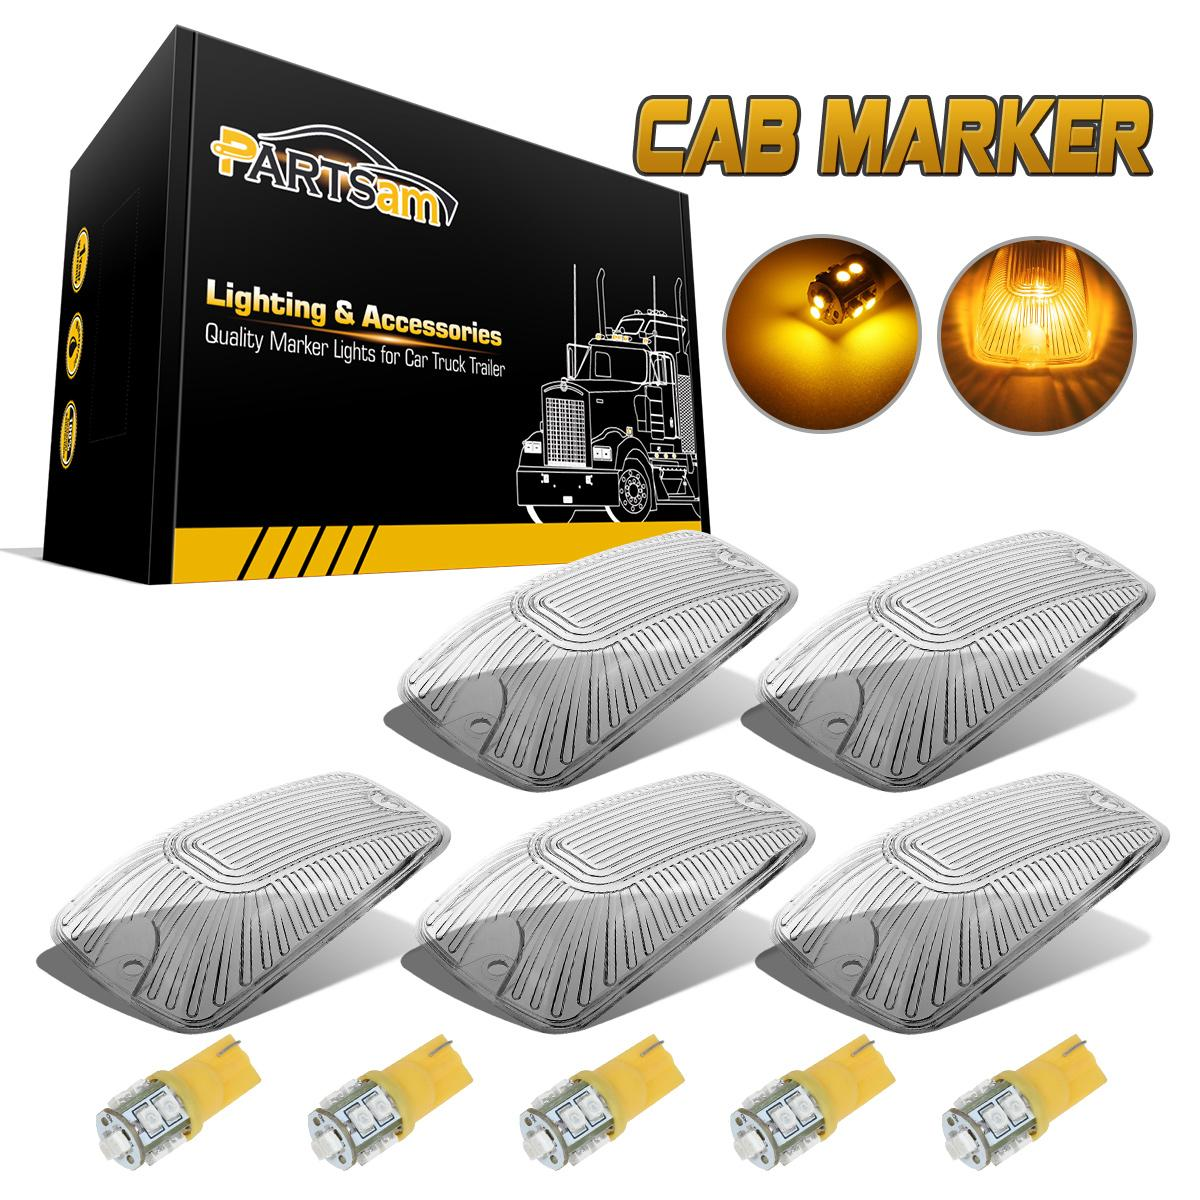 1992 Gmc Rally Wagon 3500 Camshaft: 5PC Roof Light Cab Marker Clear Covers+168 Amber LED Bulbs